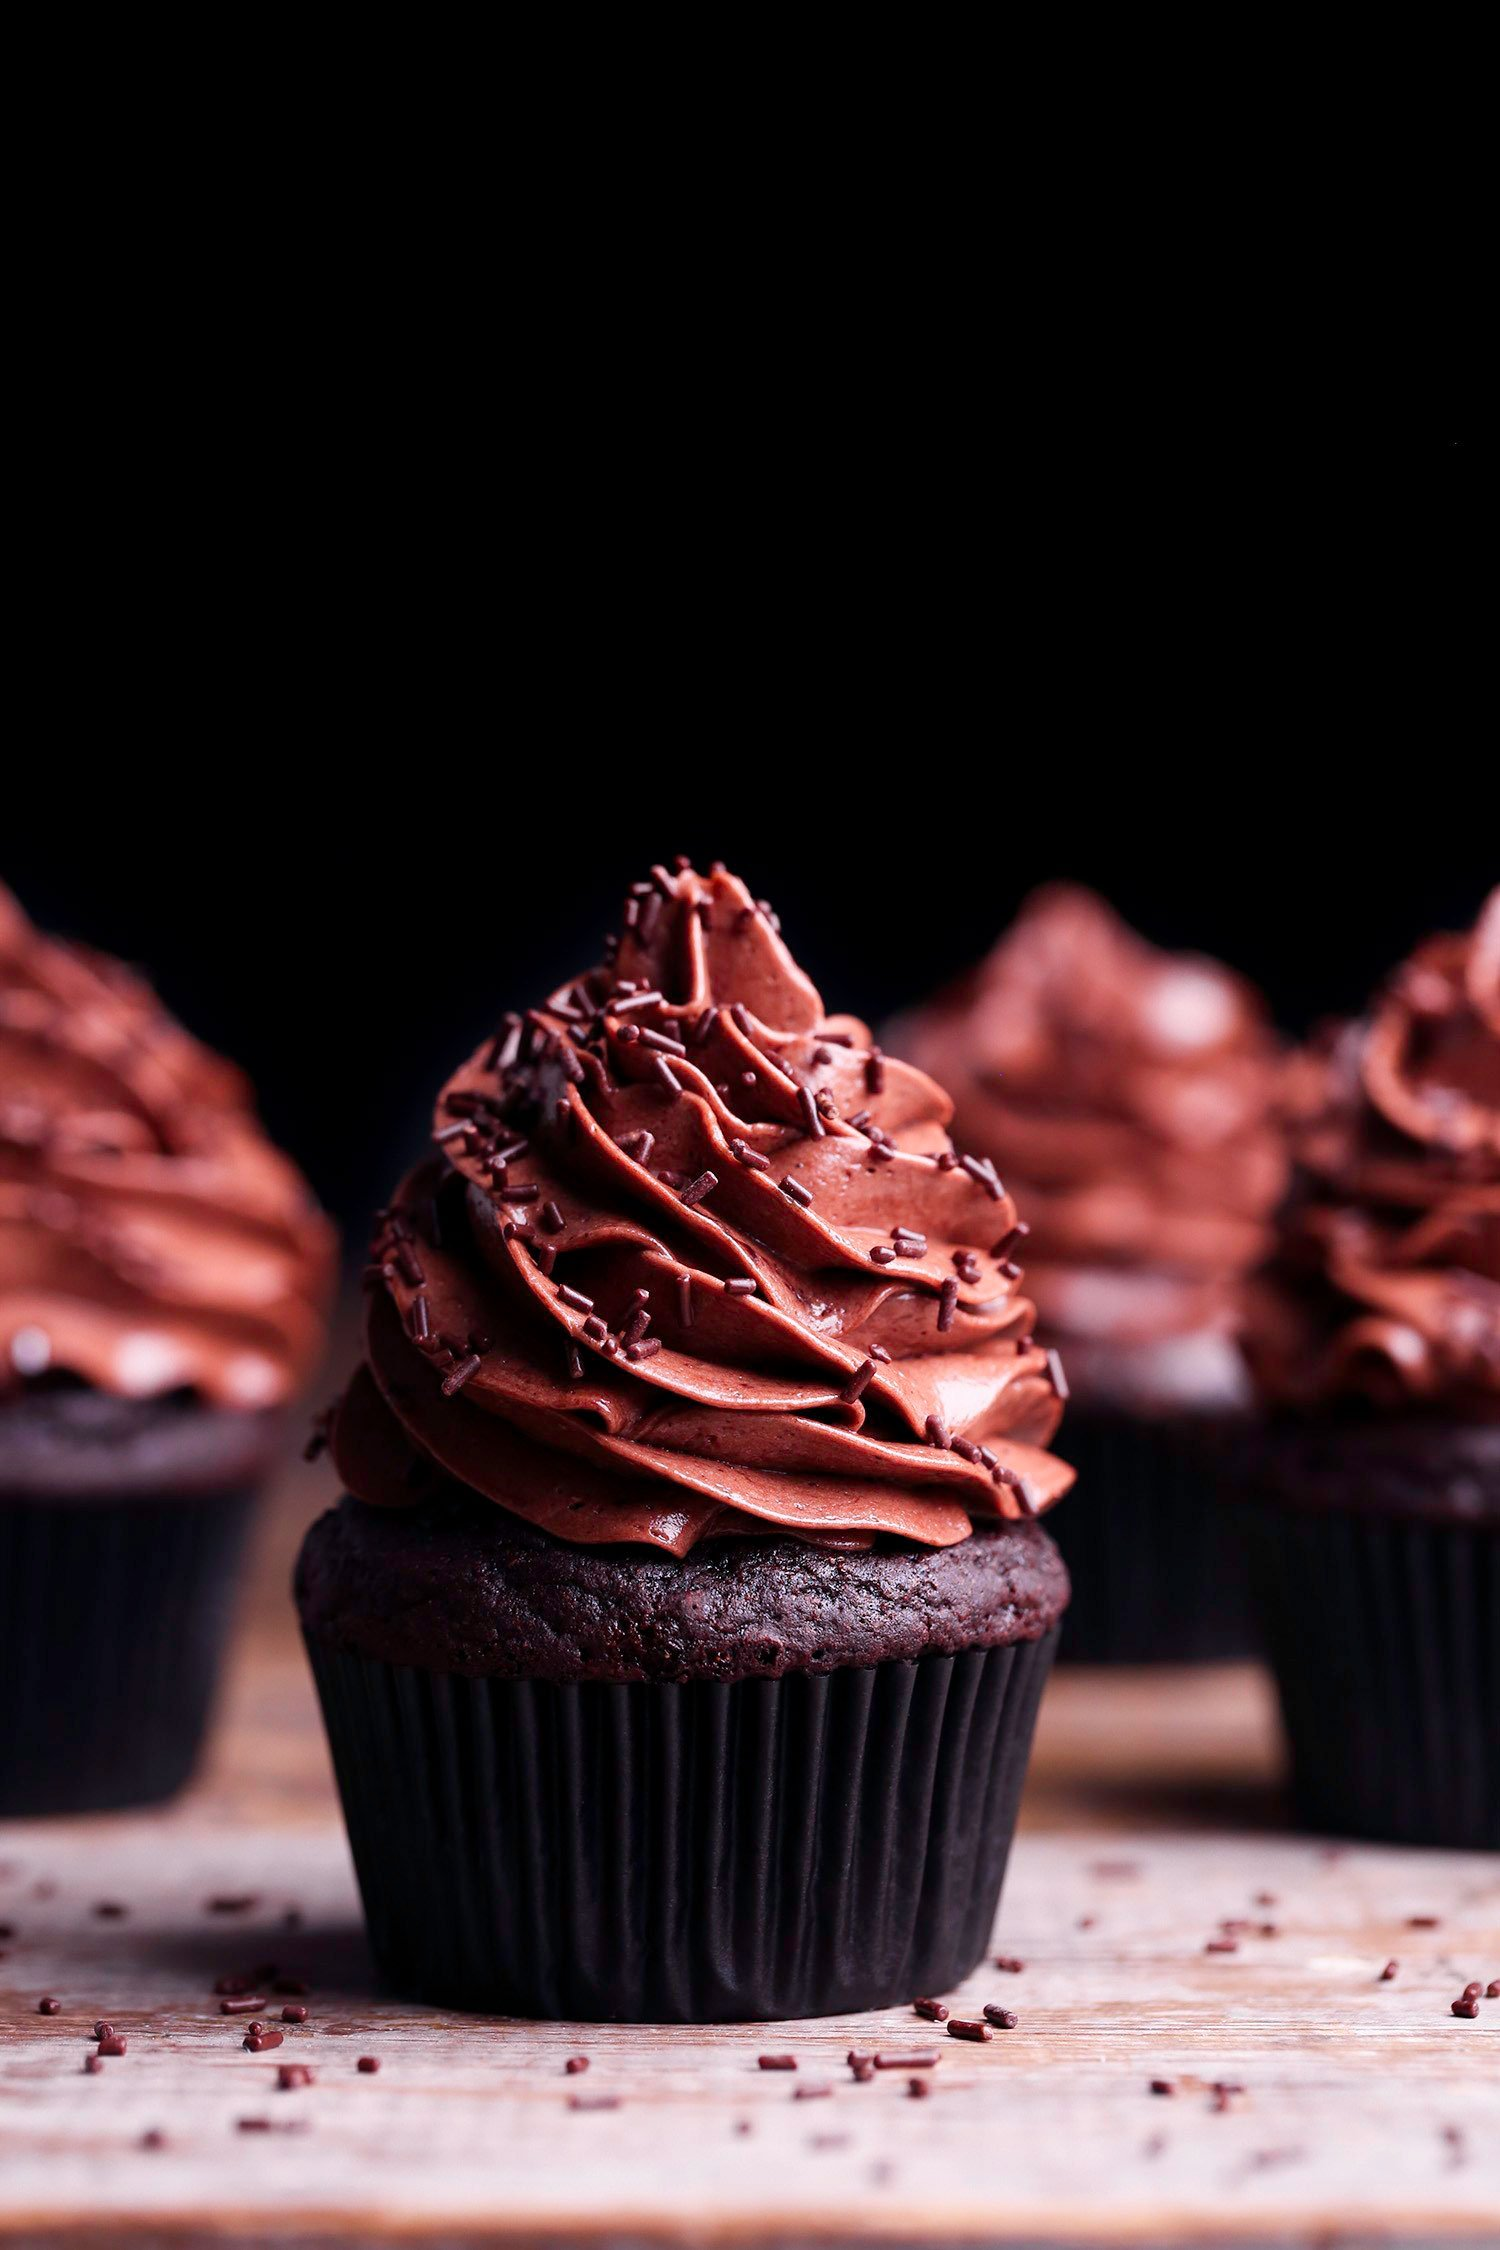 Simple Chocolate Cupcakes | Vegan Friendly with Gluten-Free Option Included